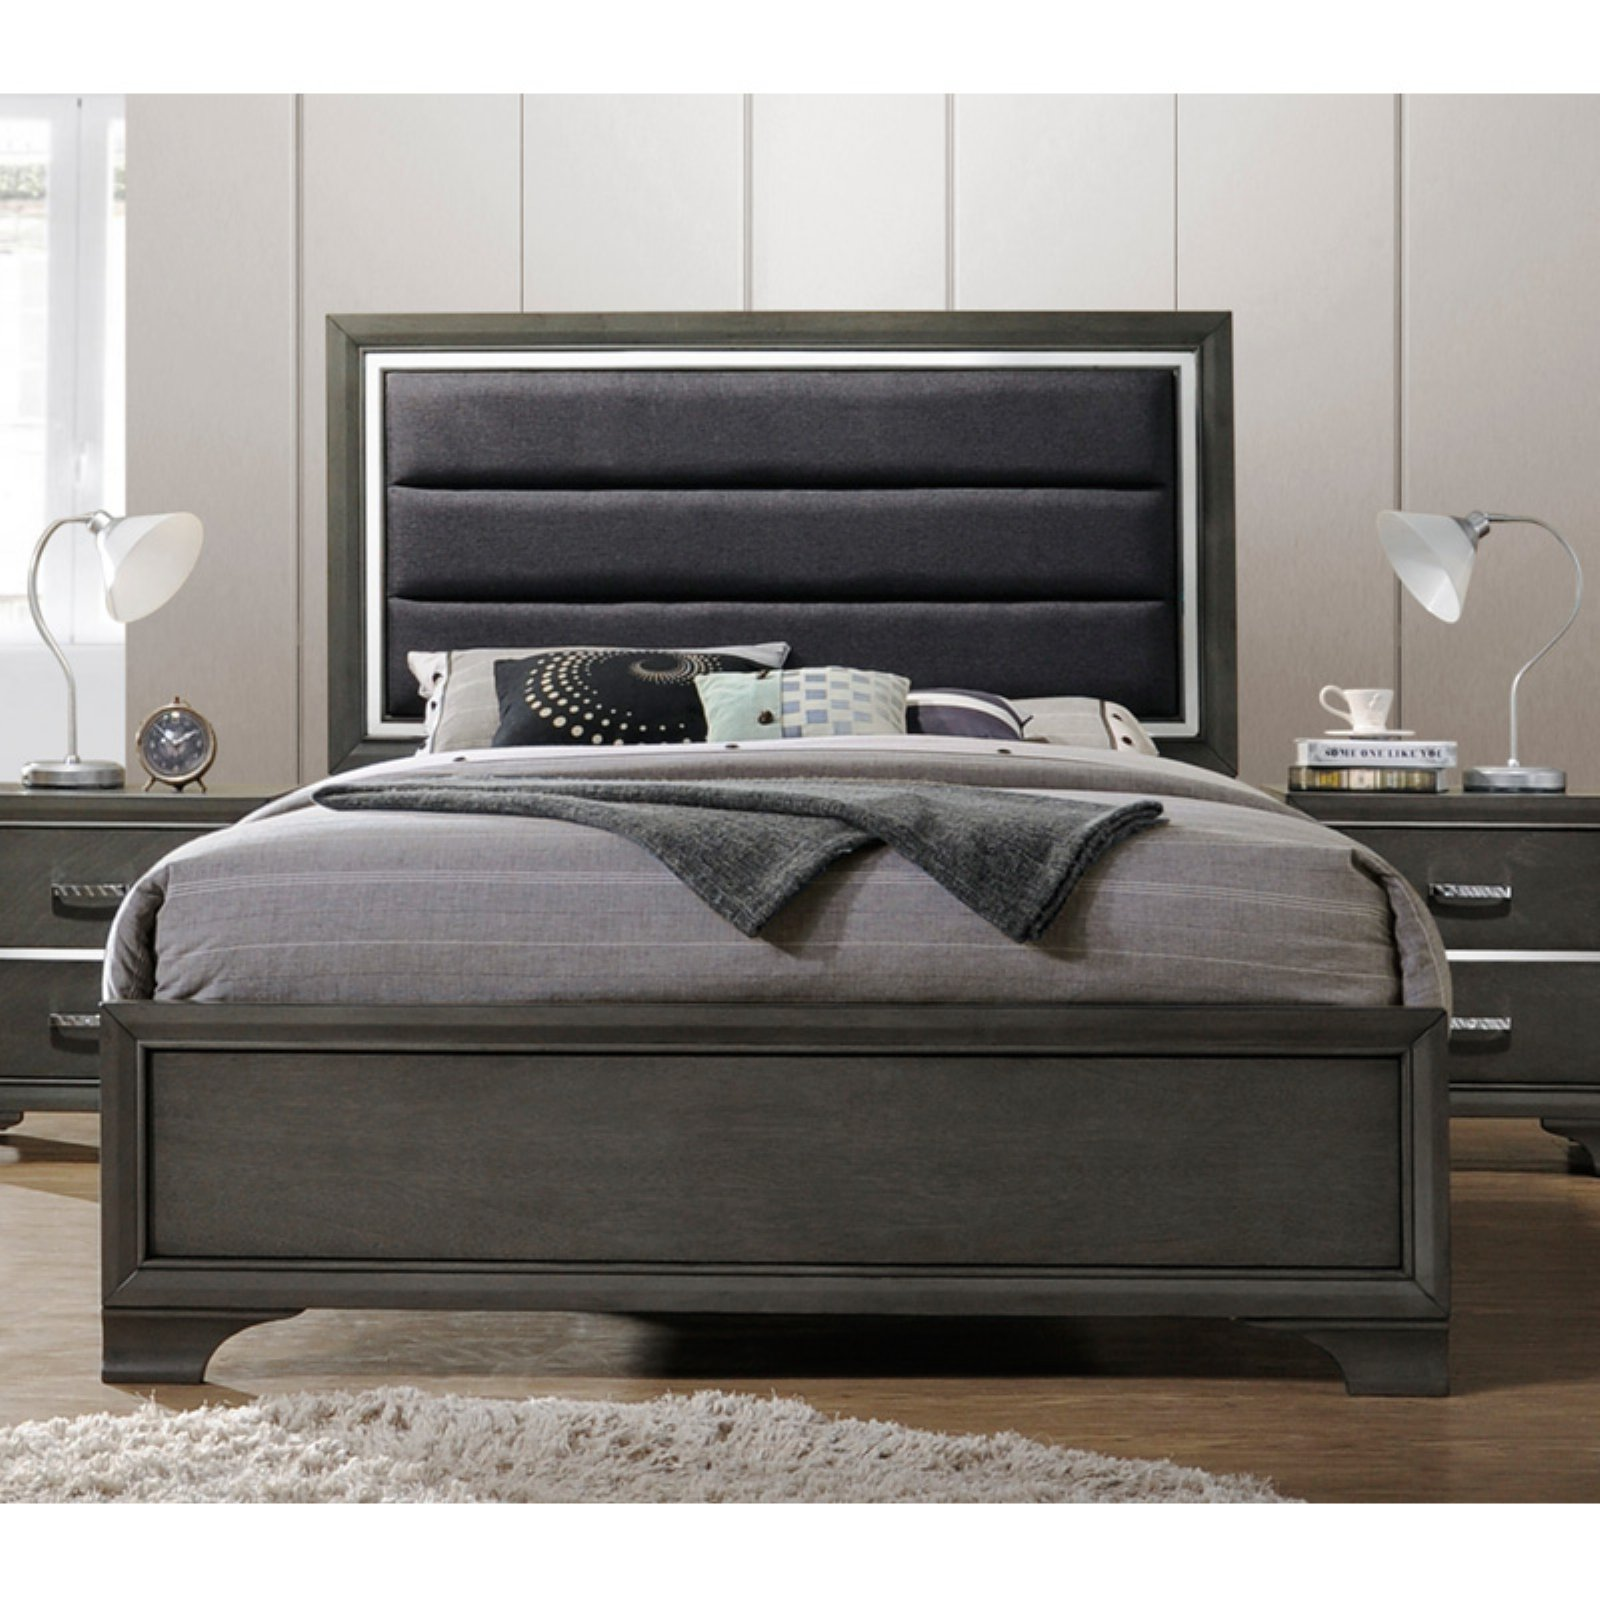 K B Furniture Upholstered Panel Bed Size Queen Panel Bed